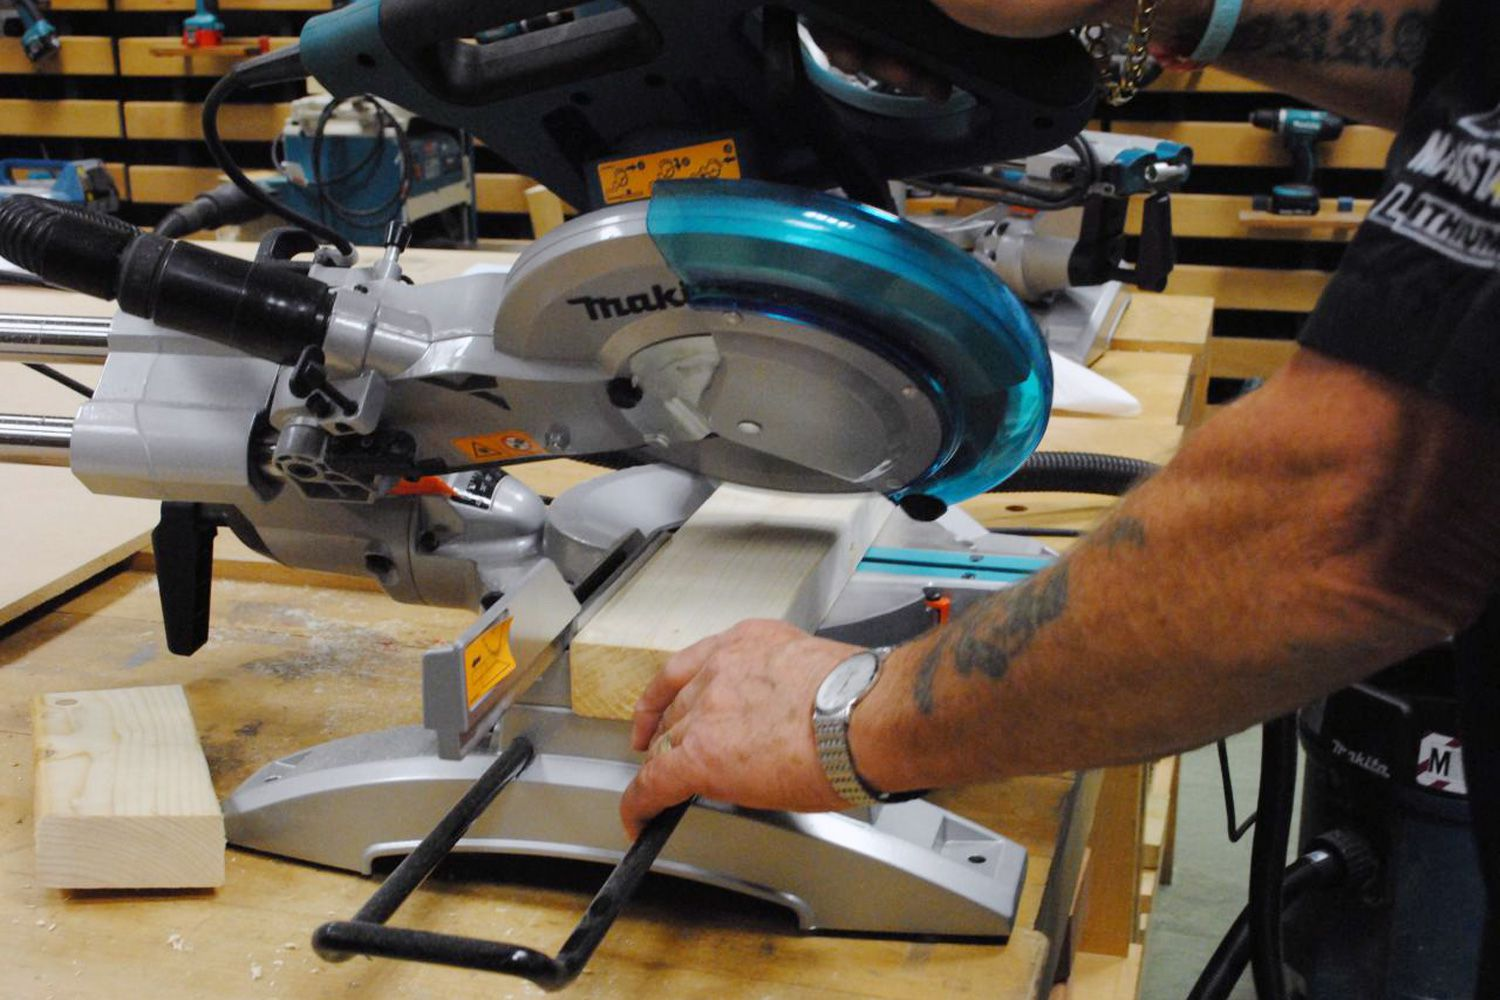 Image result for Compound miter saw